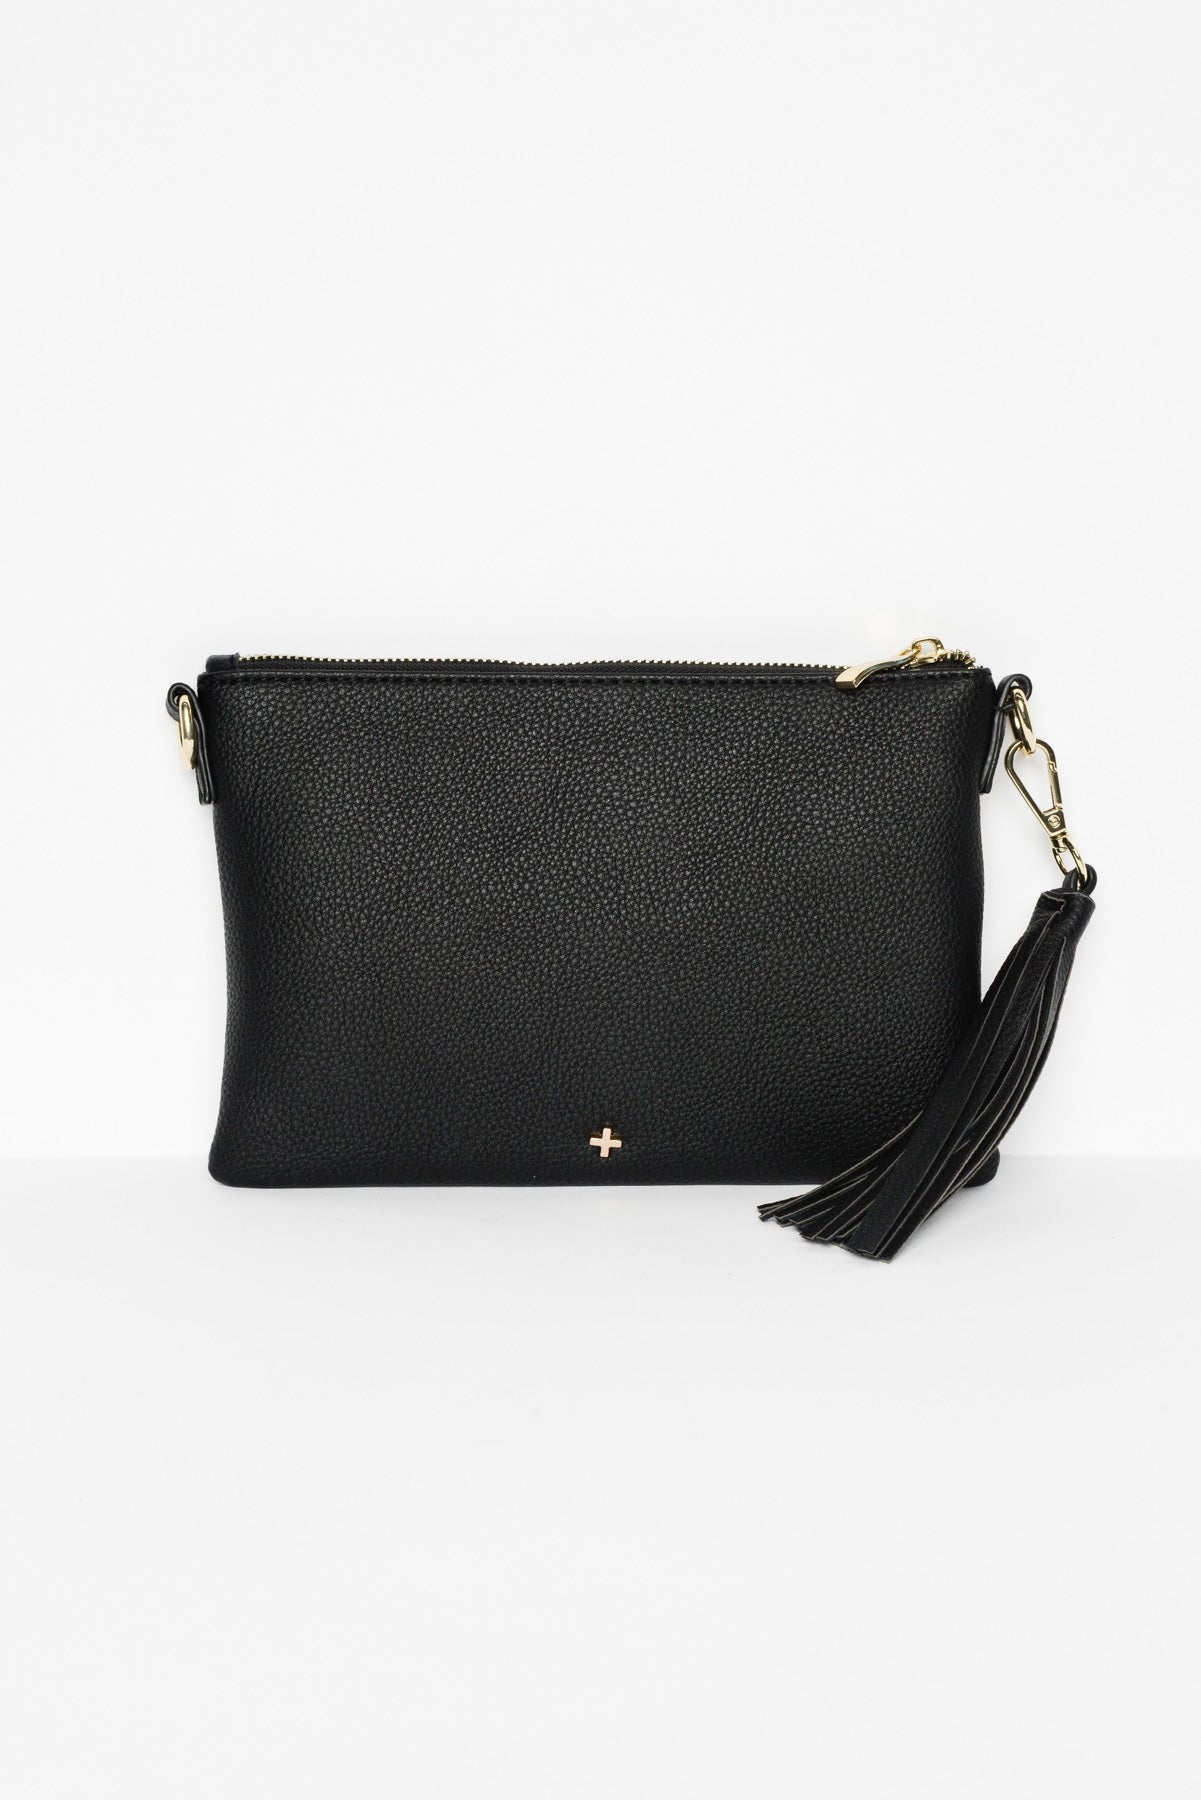 Kourtney Black Vegan Leather Clutch - Blue Bungalow